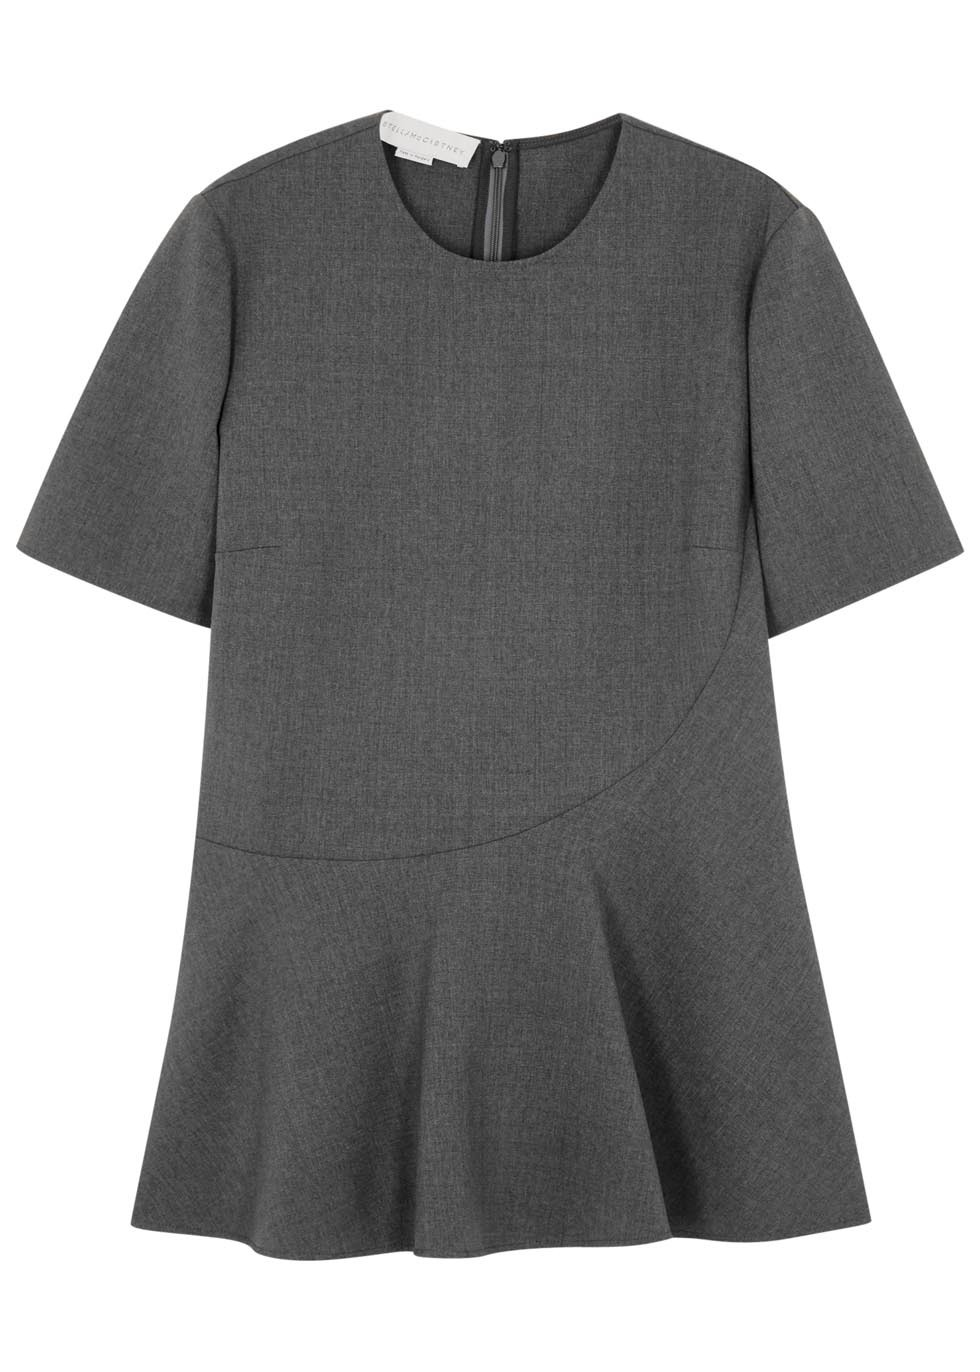 Grey Flared Stretch Wool Top - pattern: plain; predominant colour: charcoal; occasions: casual; length: standard; style: top; fibres: wool - stretch; fit: tailored/fitted; neckline: crew; sleeve length: short sleeve; sleeve style: standard; pattern type: fabric; texture group: woven light midweight; season: s/s 2016; wardrobe: basic